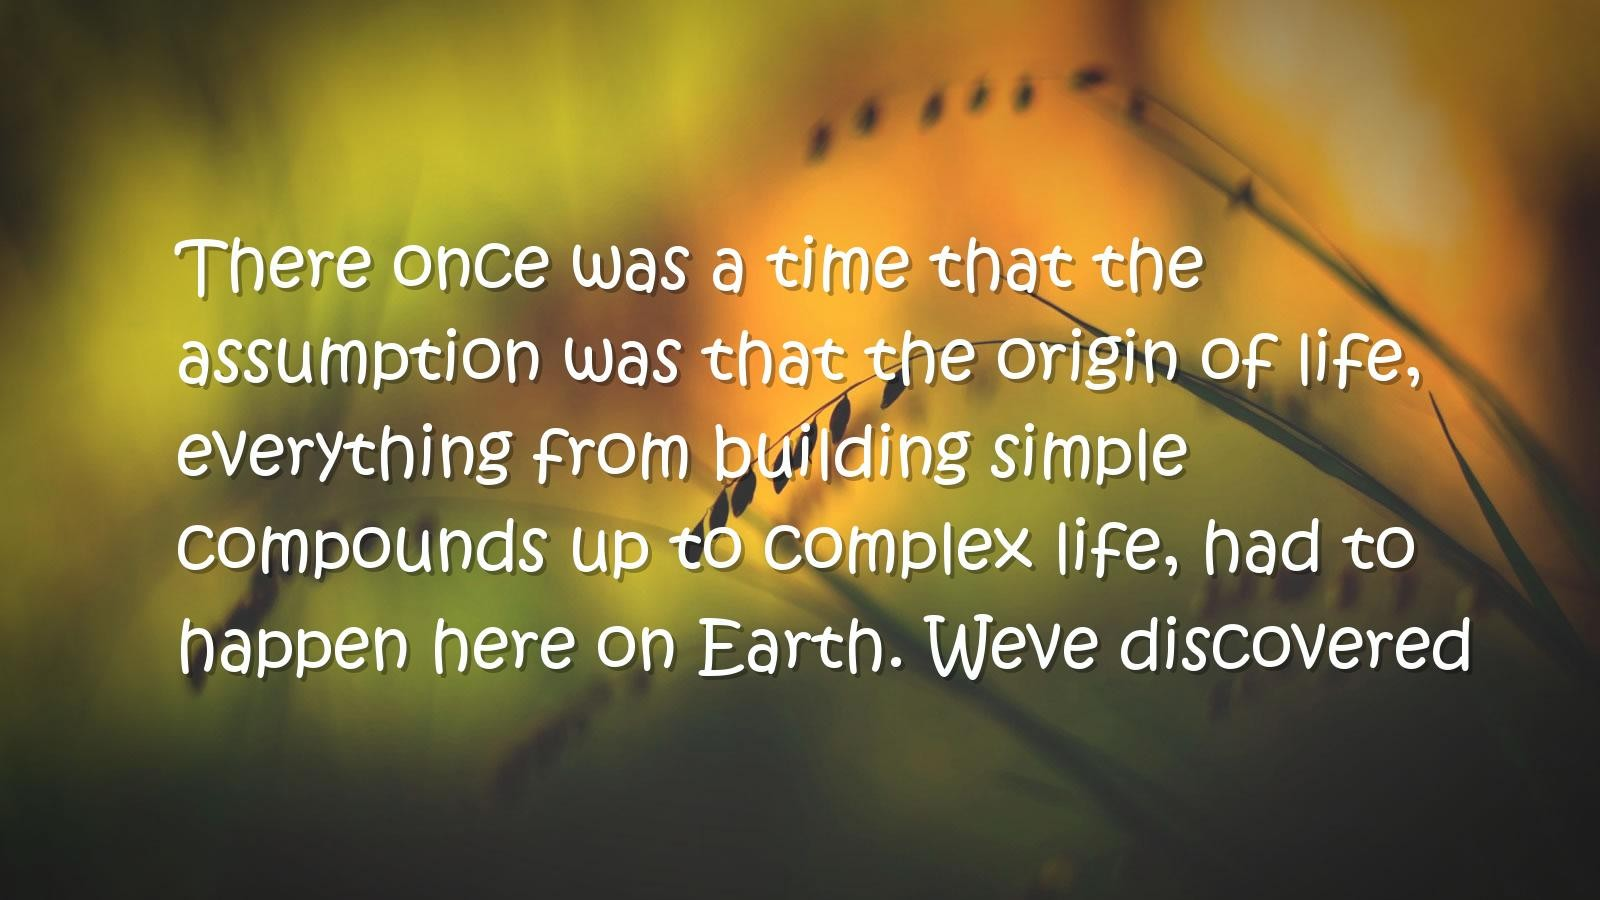 There once was a time that the assumption was that the origin of life, everything from building ..